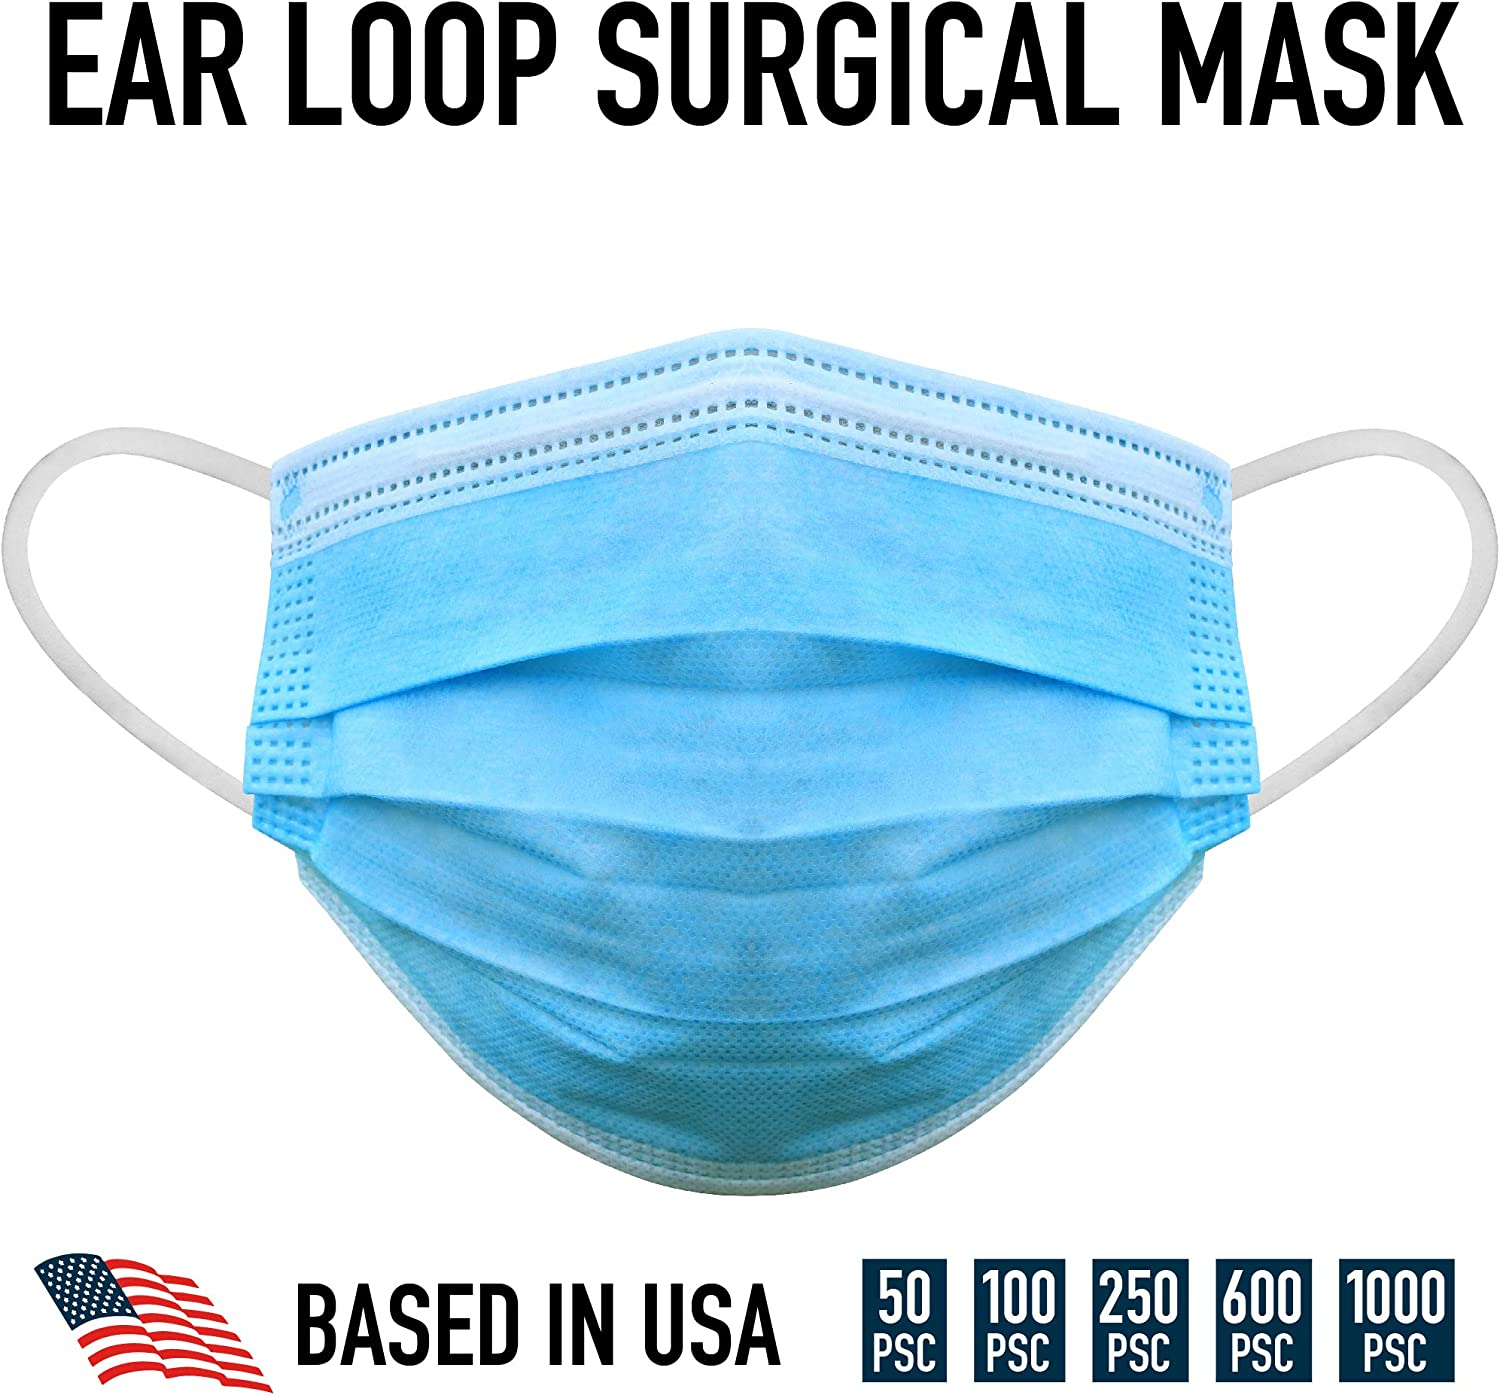 3 Ply Disposable Mask with Elastic Ear Loops - Mask 50 PCS - Soft & Comfortable Filter Safety Mask for Dust Protection